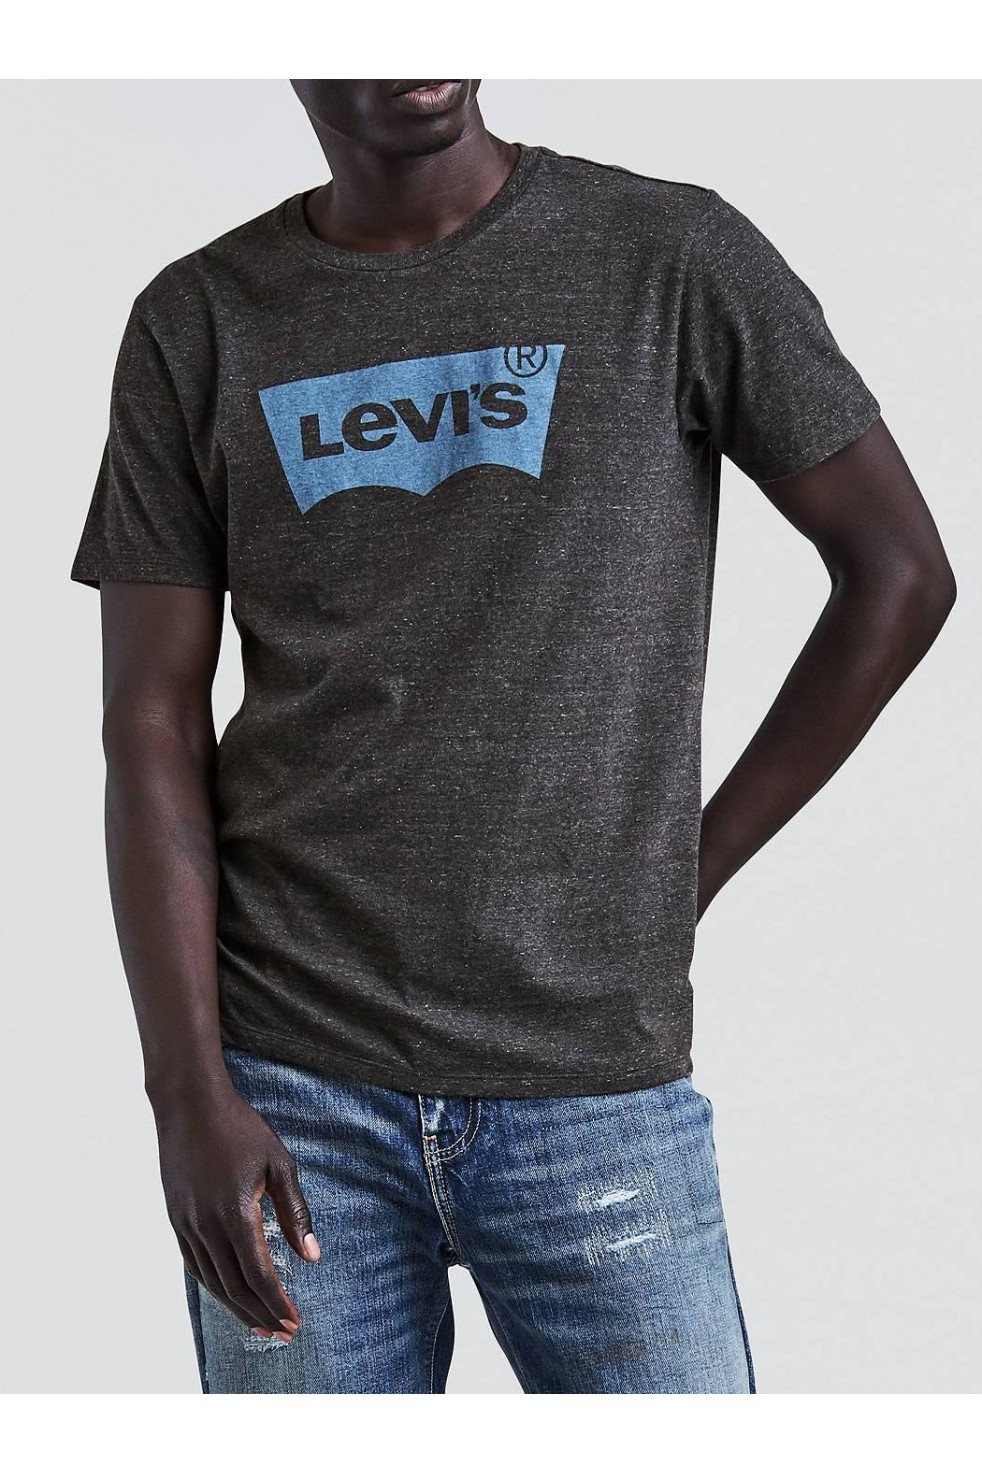 Levis Erkek T-shirt-Housemark-Graphic-Tee-22489-0097